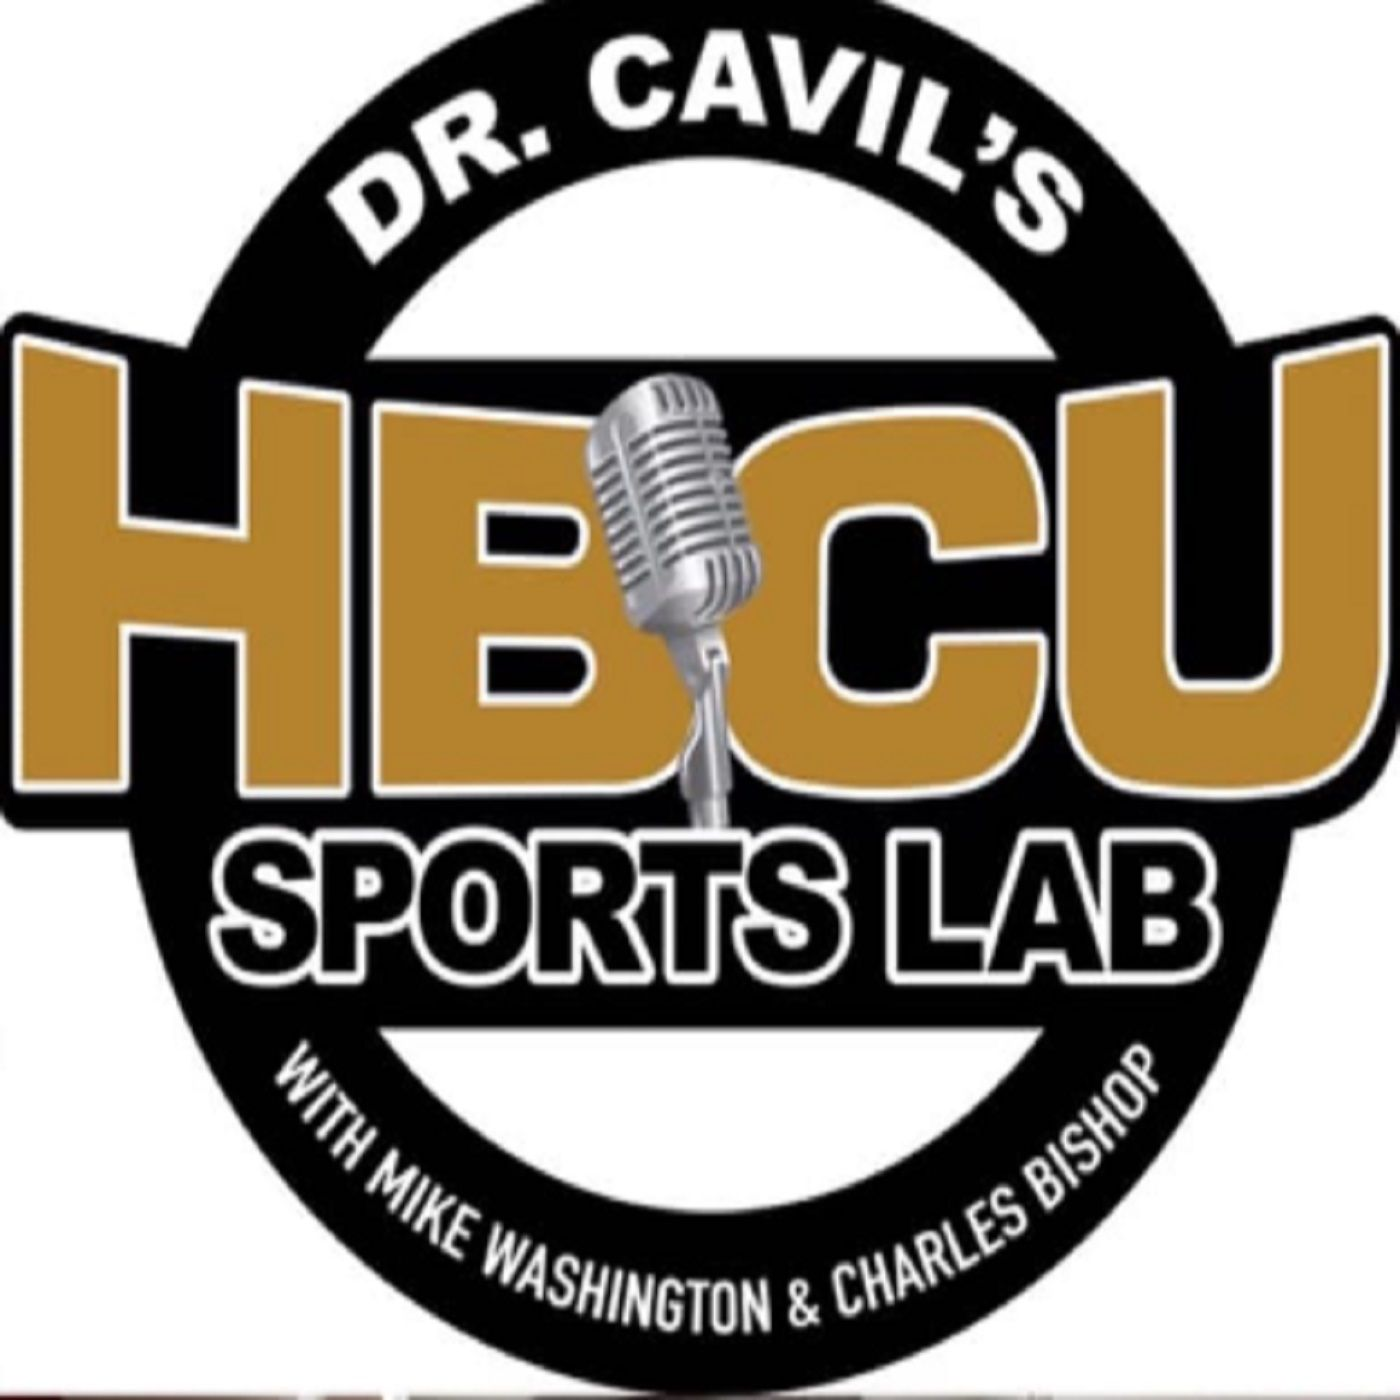 Episode 146 - Dr. Cavil's Inside the HBCU Sports Lab with Alan Williams from the 1876 Sports and Culture Podcast